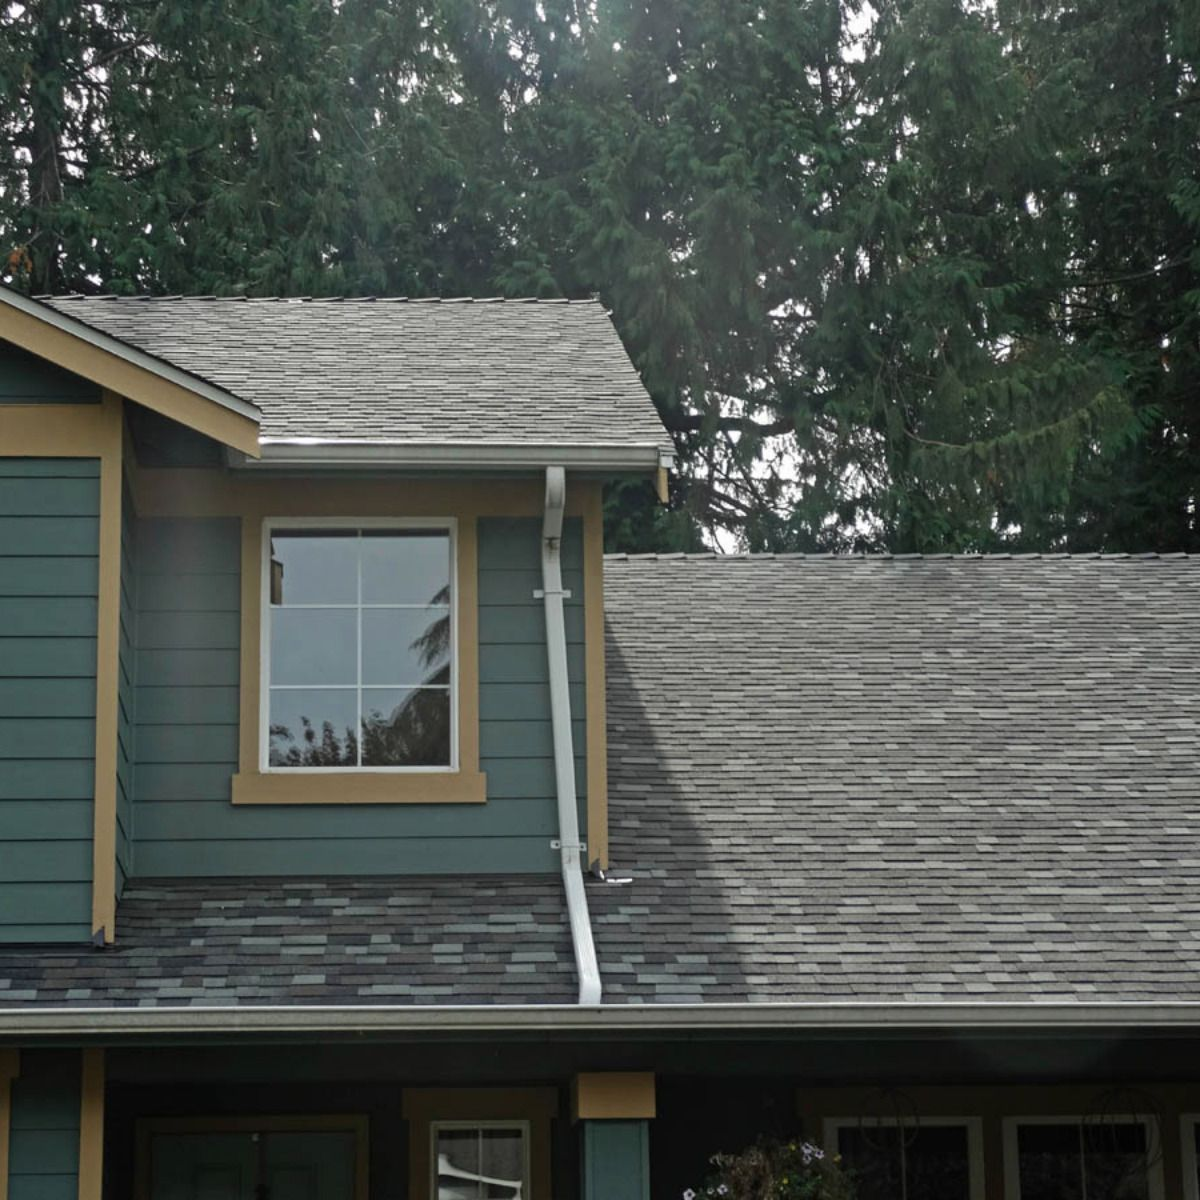 Roofing Contractor Local Roofing Certified Roofers Residential Roofing With Images Roofing Residential Roofing Roof Repair